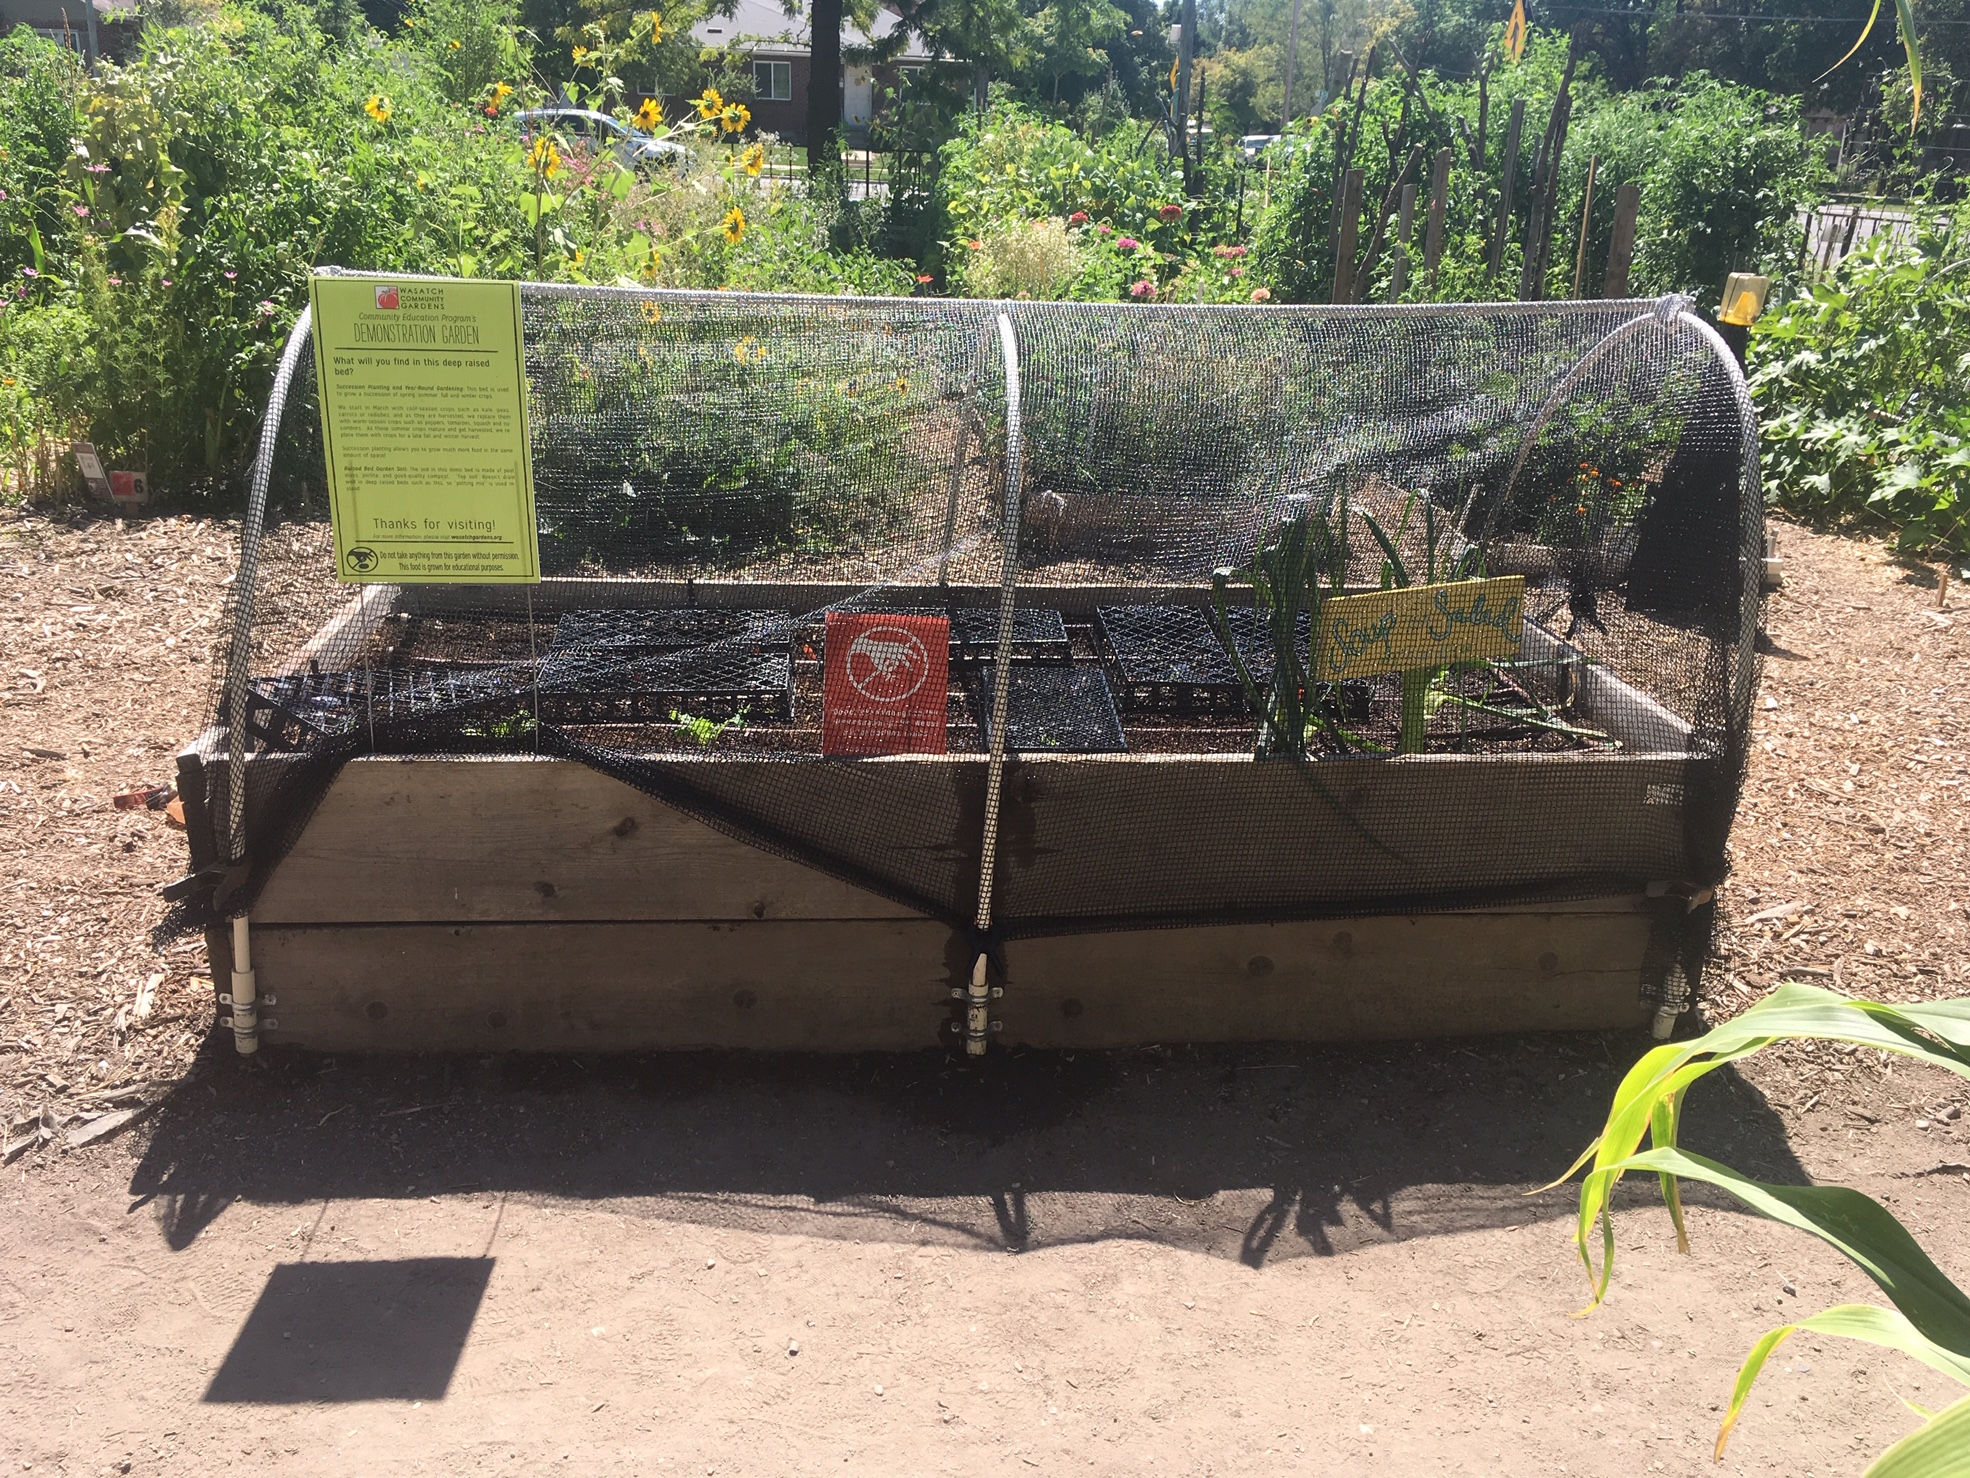 Hoop House with shade cloth